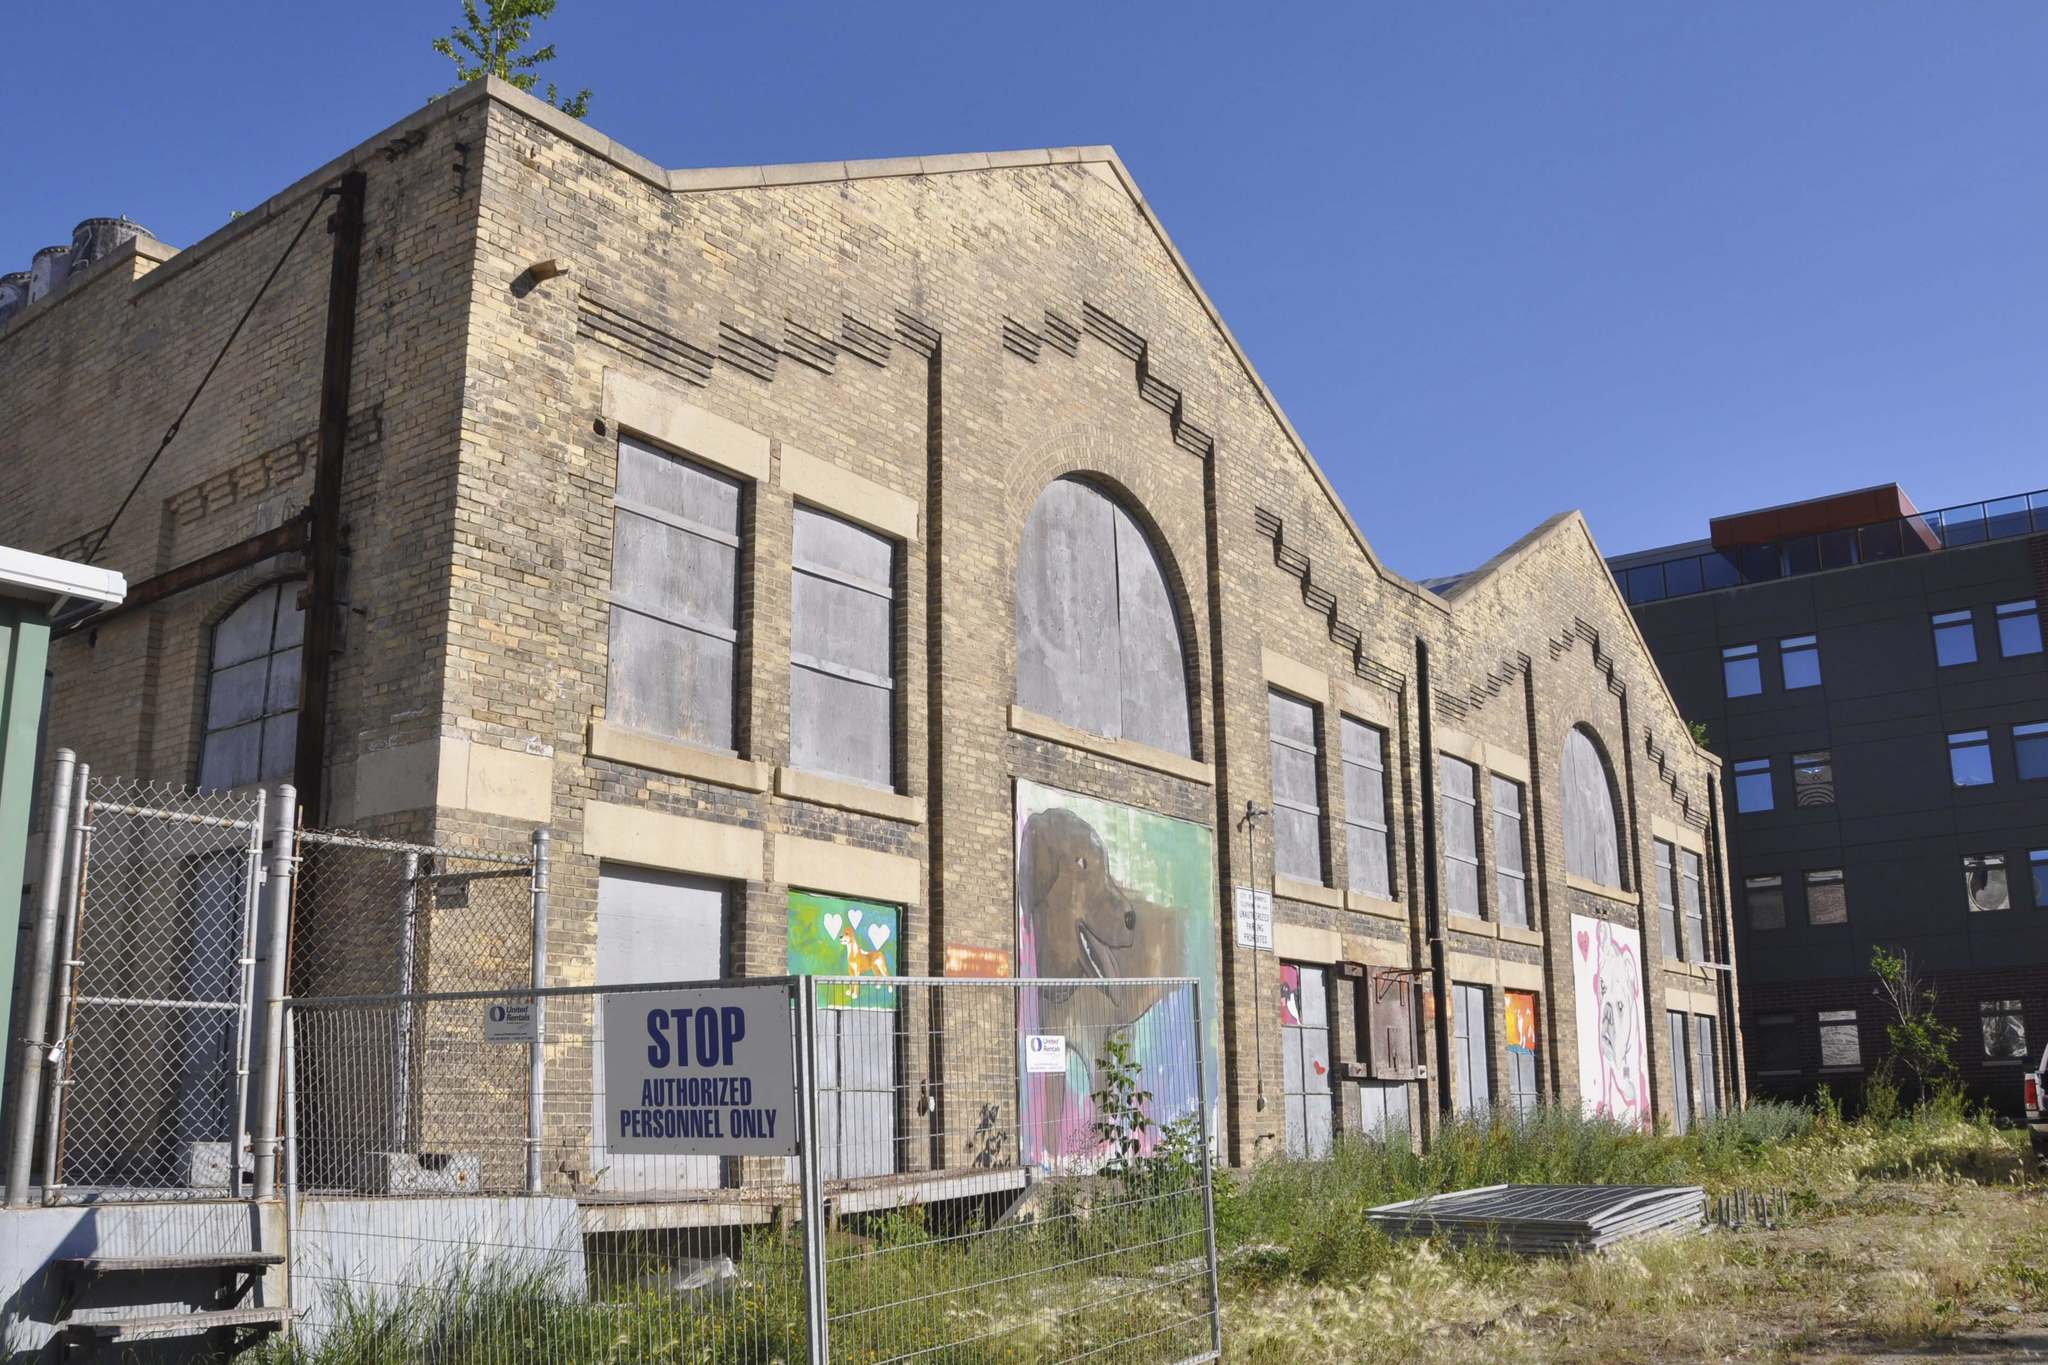 The Waterfront Drive neighbourhood has grown up around the boarded-up facade of the James Avenue Pumping Station.</p>